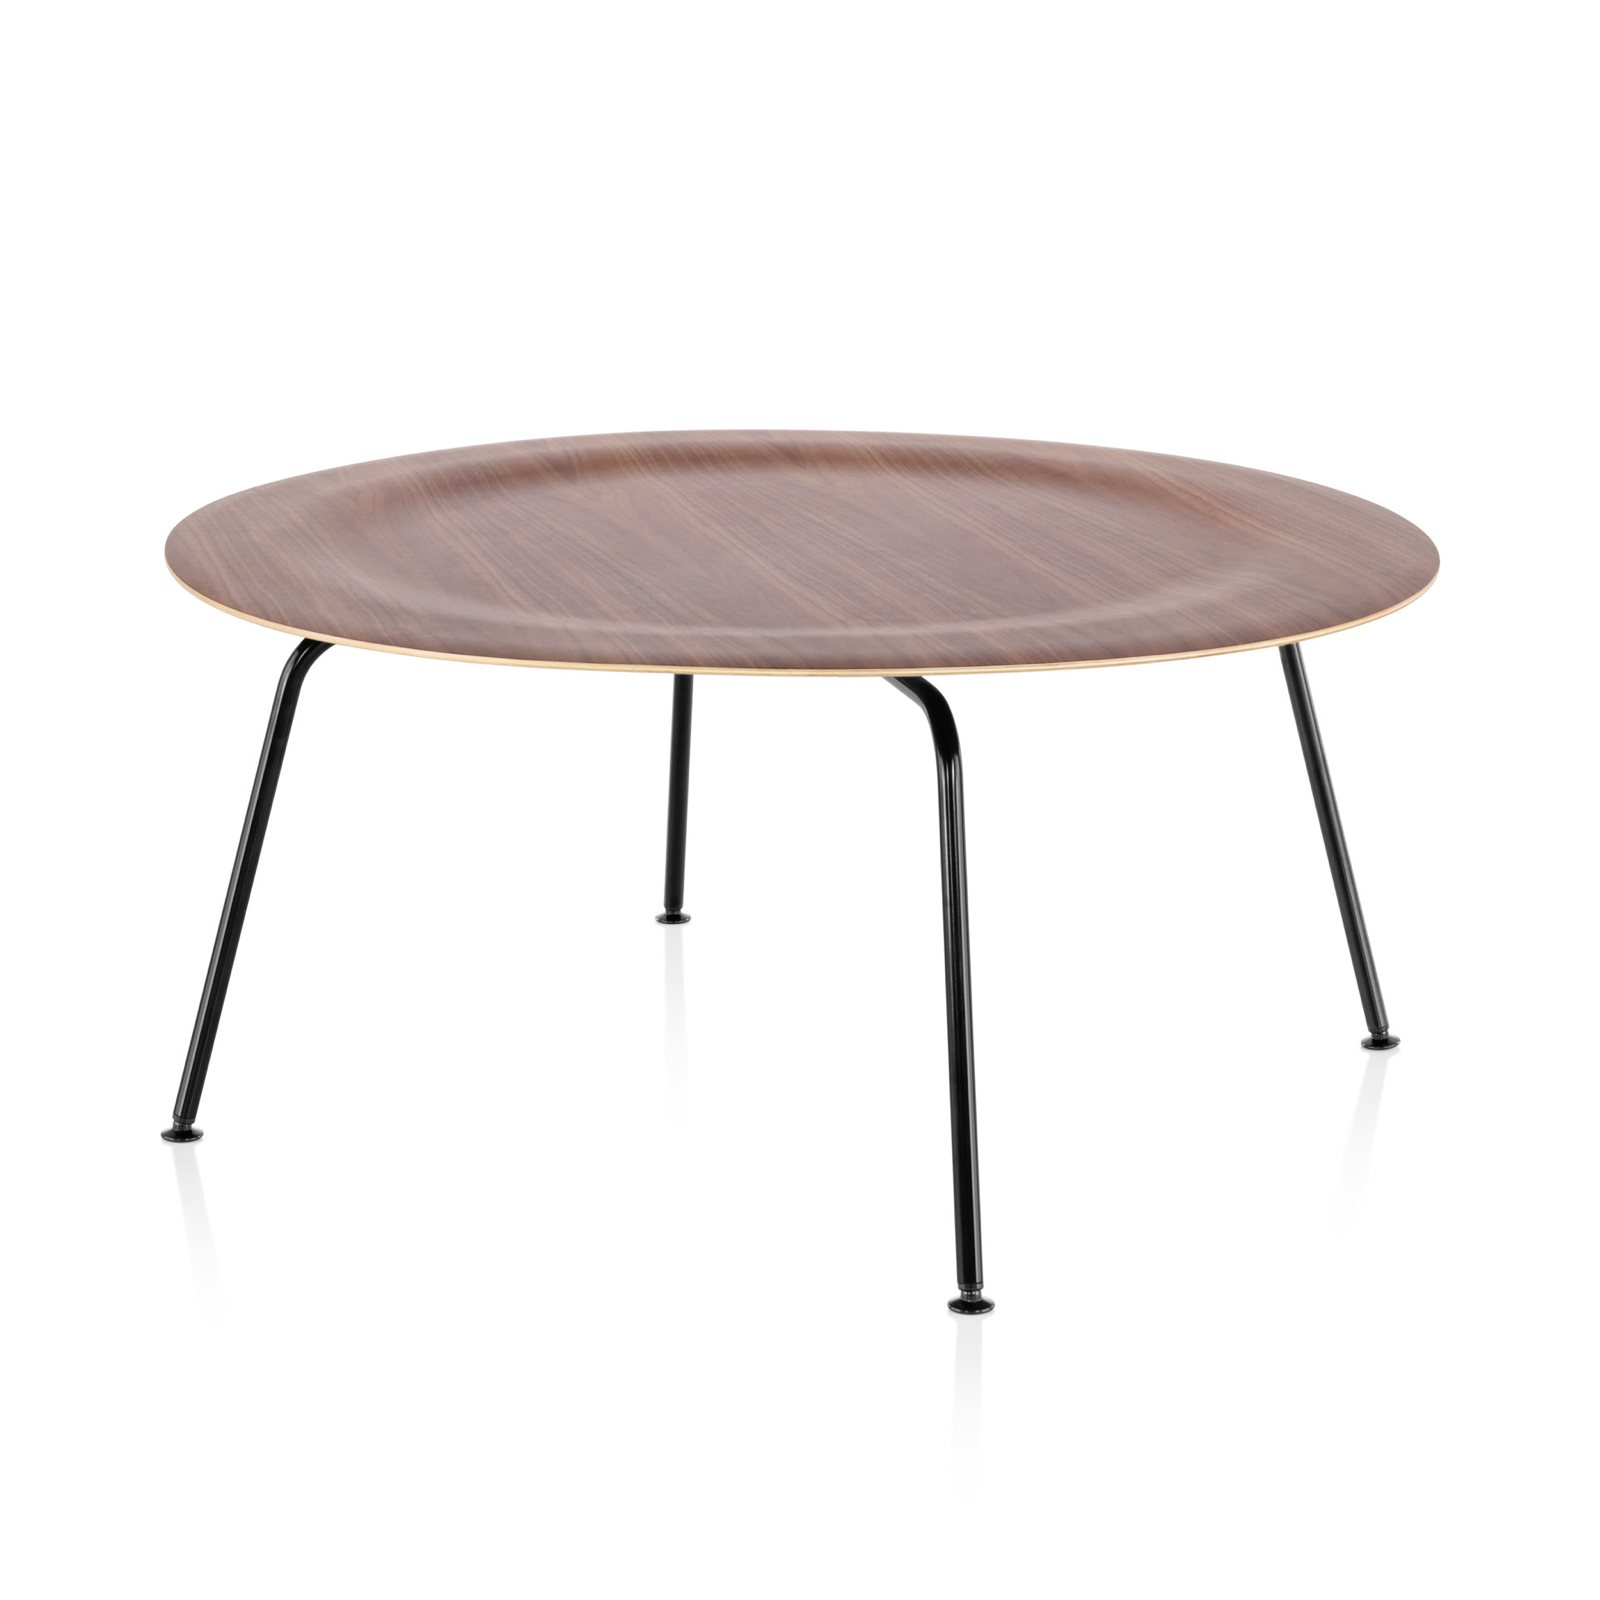 eames molded plywood coffee table metal base by charles ray eames for herman miller up interiors. Black Bedroom Furniture Sets. Home Design Ideas